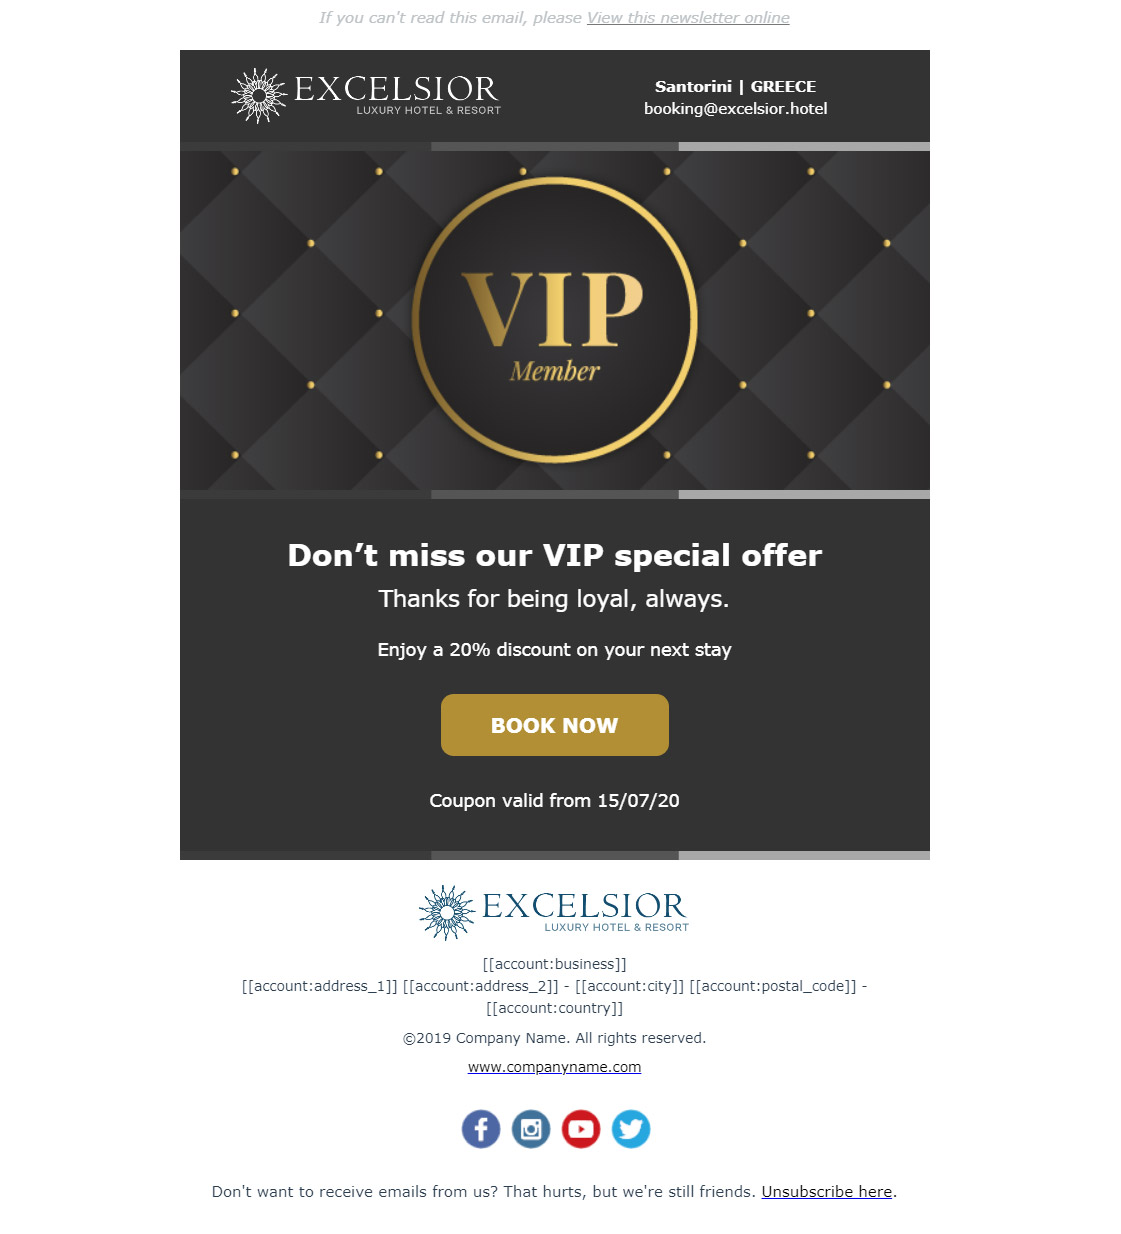 Hotel newsletter example - Reward your customers' loyalty